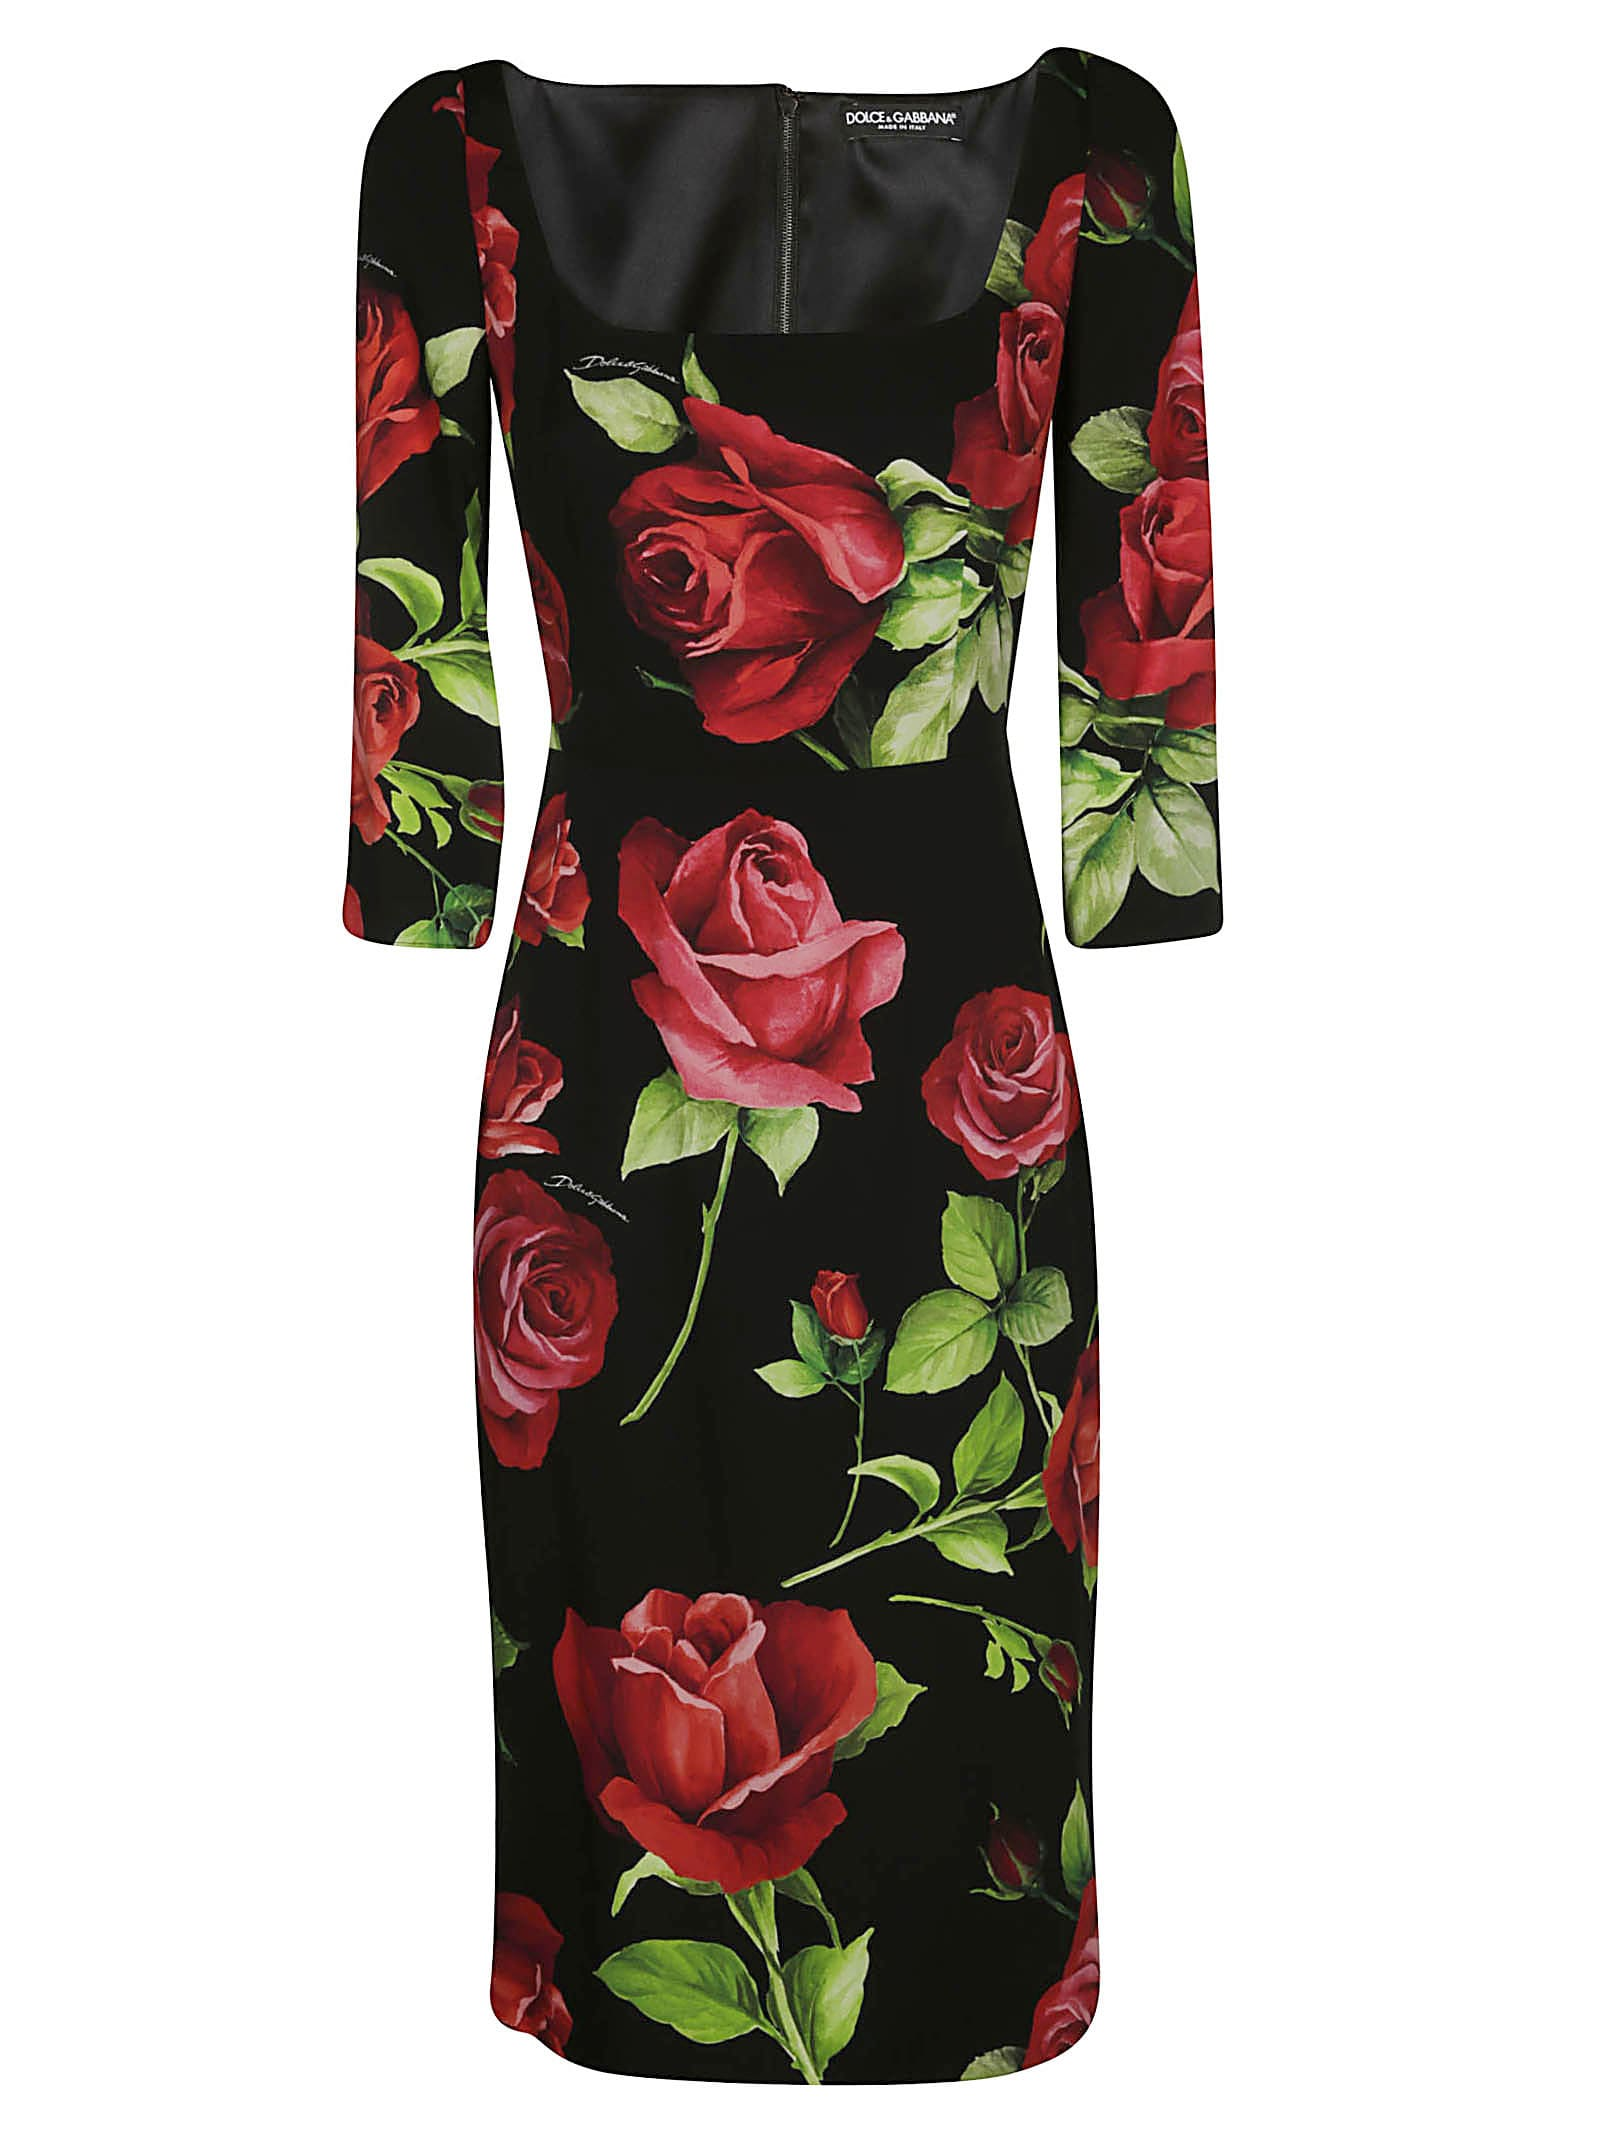 Dolce & Gabbana Portofino Print Dress